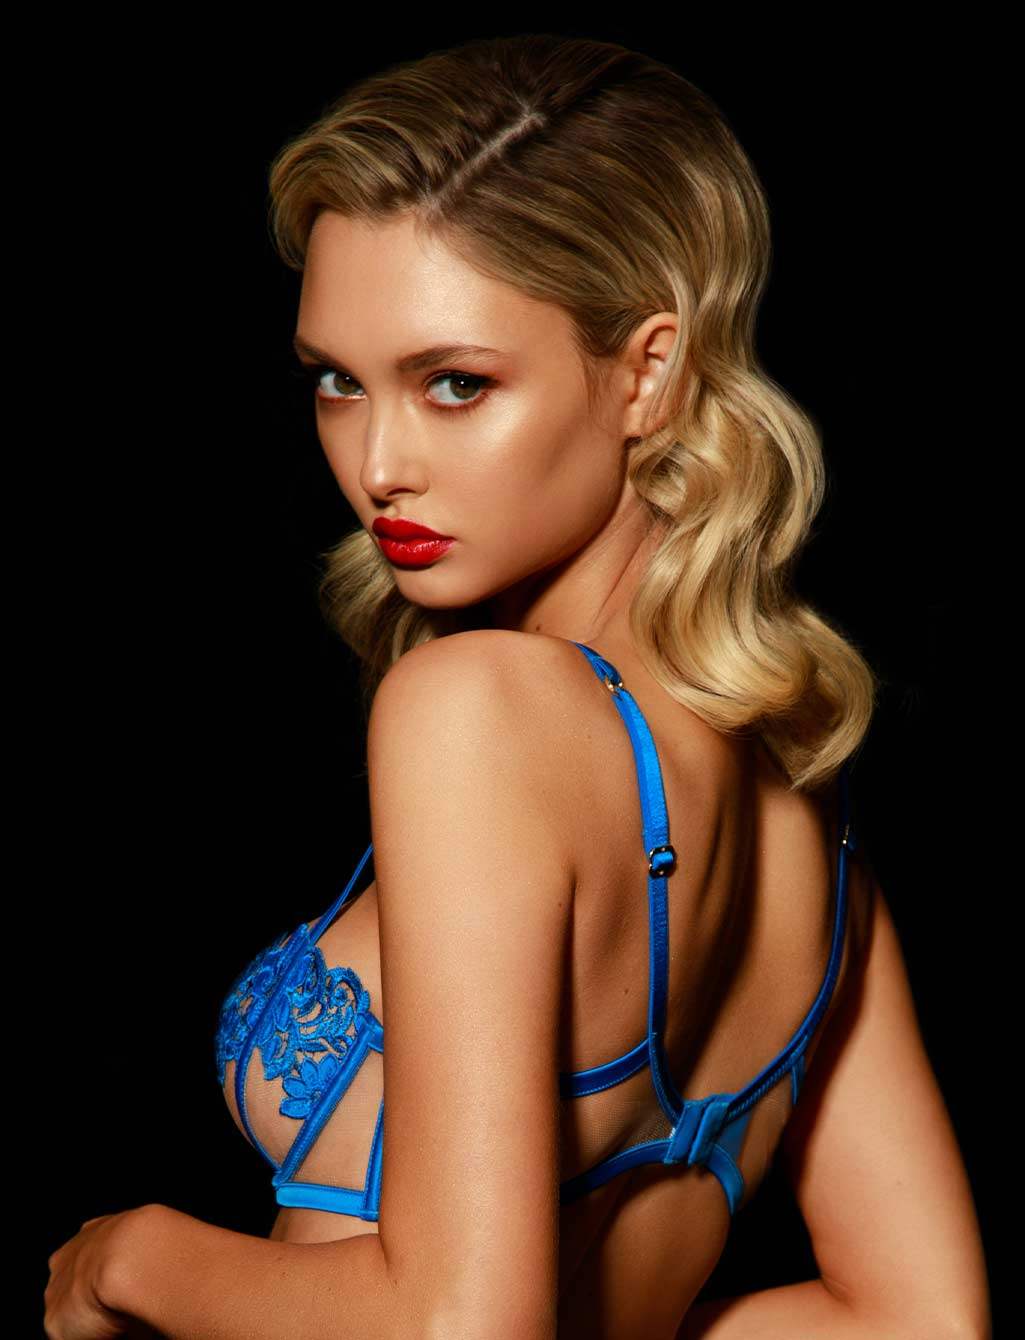 Amelie Royal Blue Underwire Bra - Shop Bras | Honey Birdette